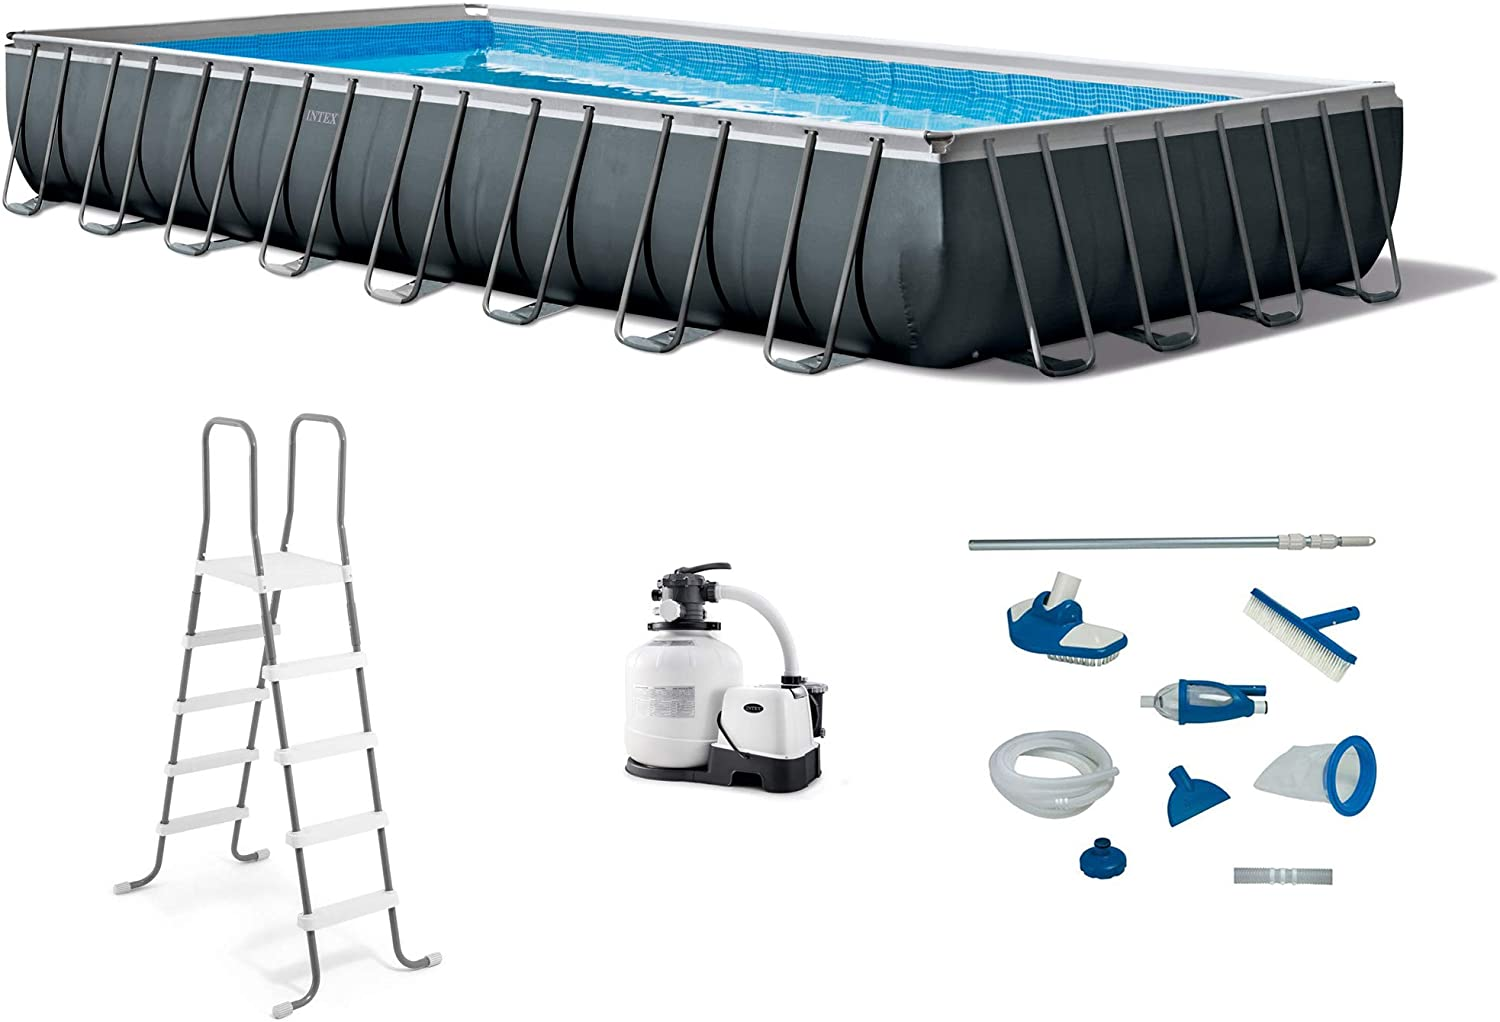 Intex 26377EH 32ft x 16ft x 52in Ultra XTR Rectangular Swimming Pool with 28003E Maintenance Kit